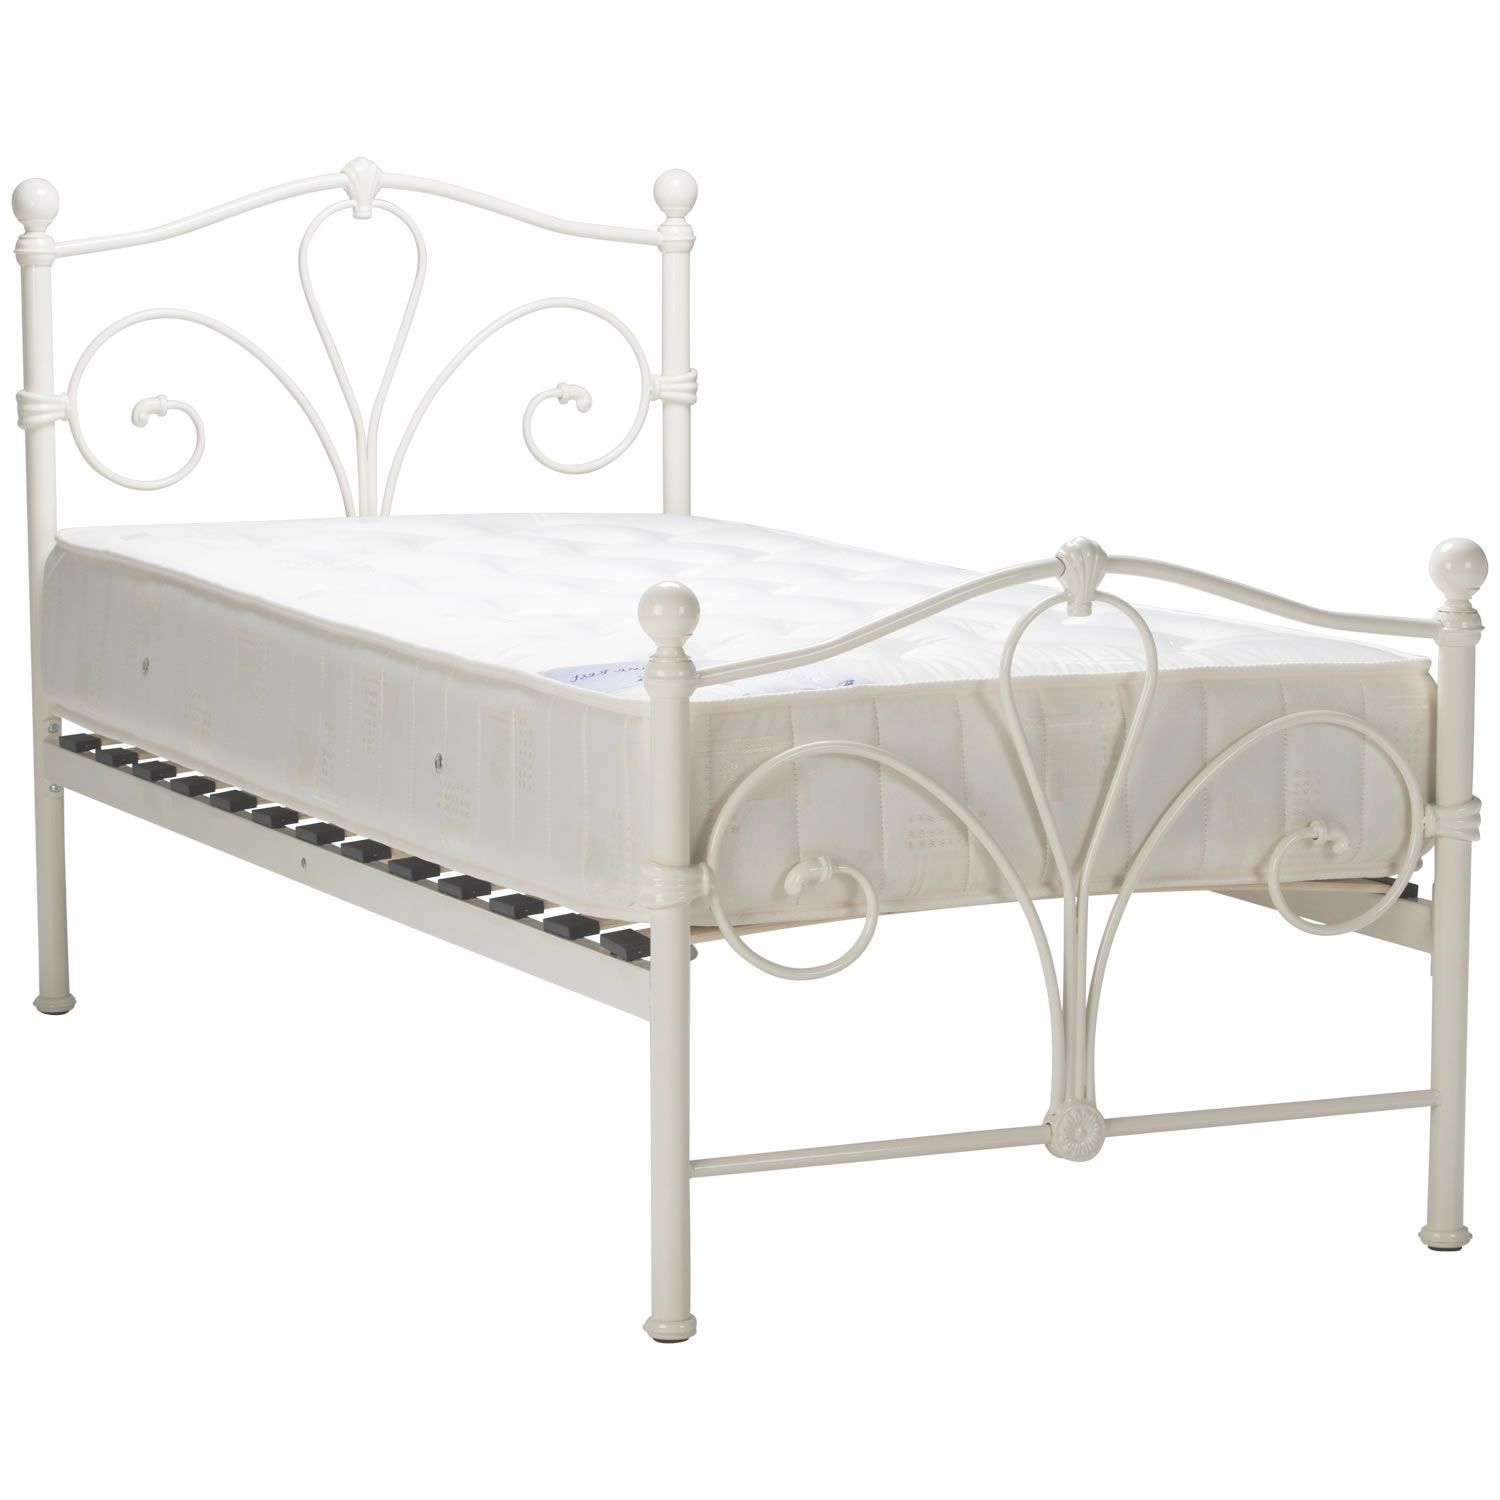 Nimbus Bedstead Next Day Select Day Delivery Beds Pinterest